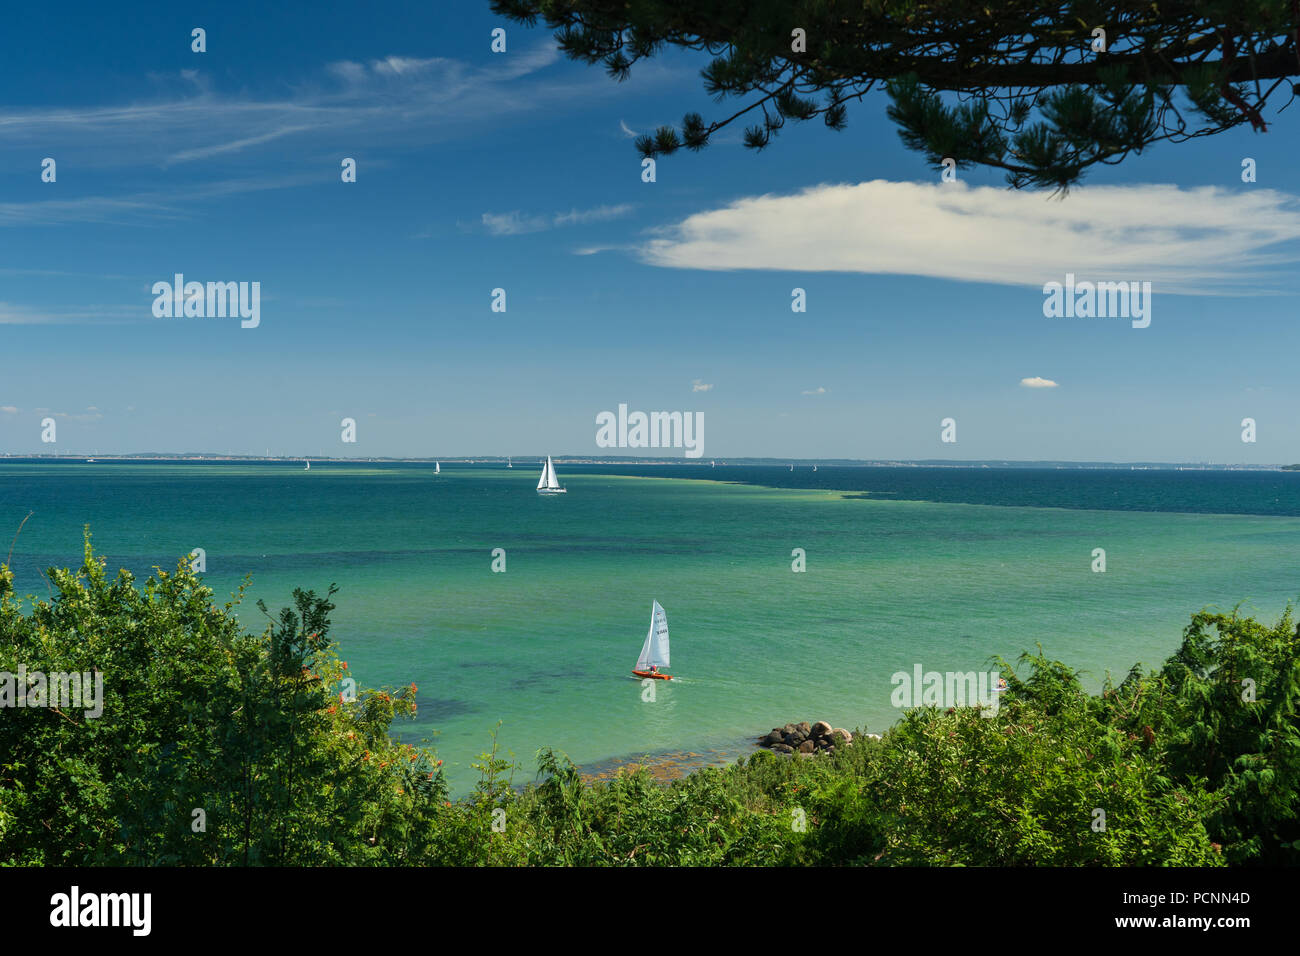 Algal bloom by Danish beaches July 2108. Danger to health. - Stock Image